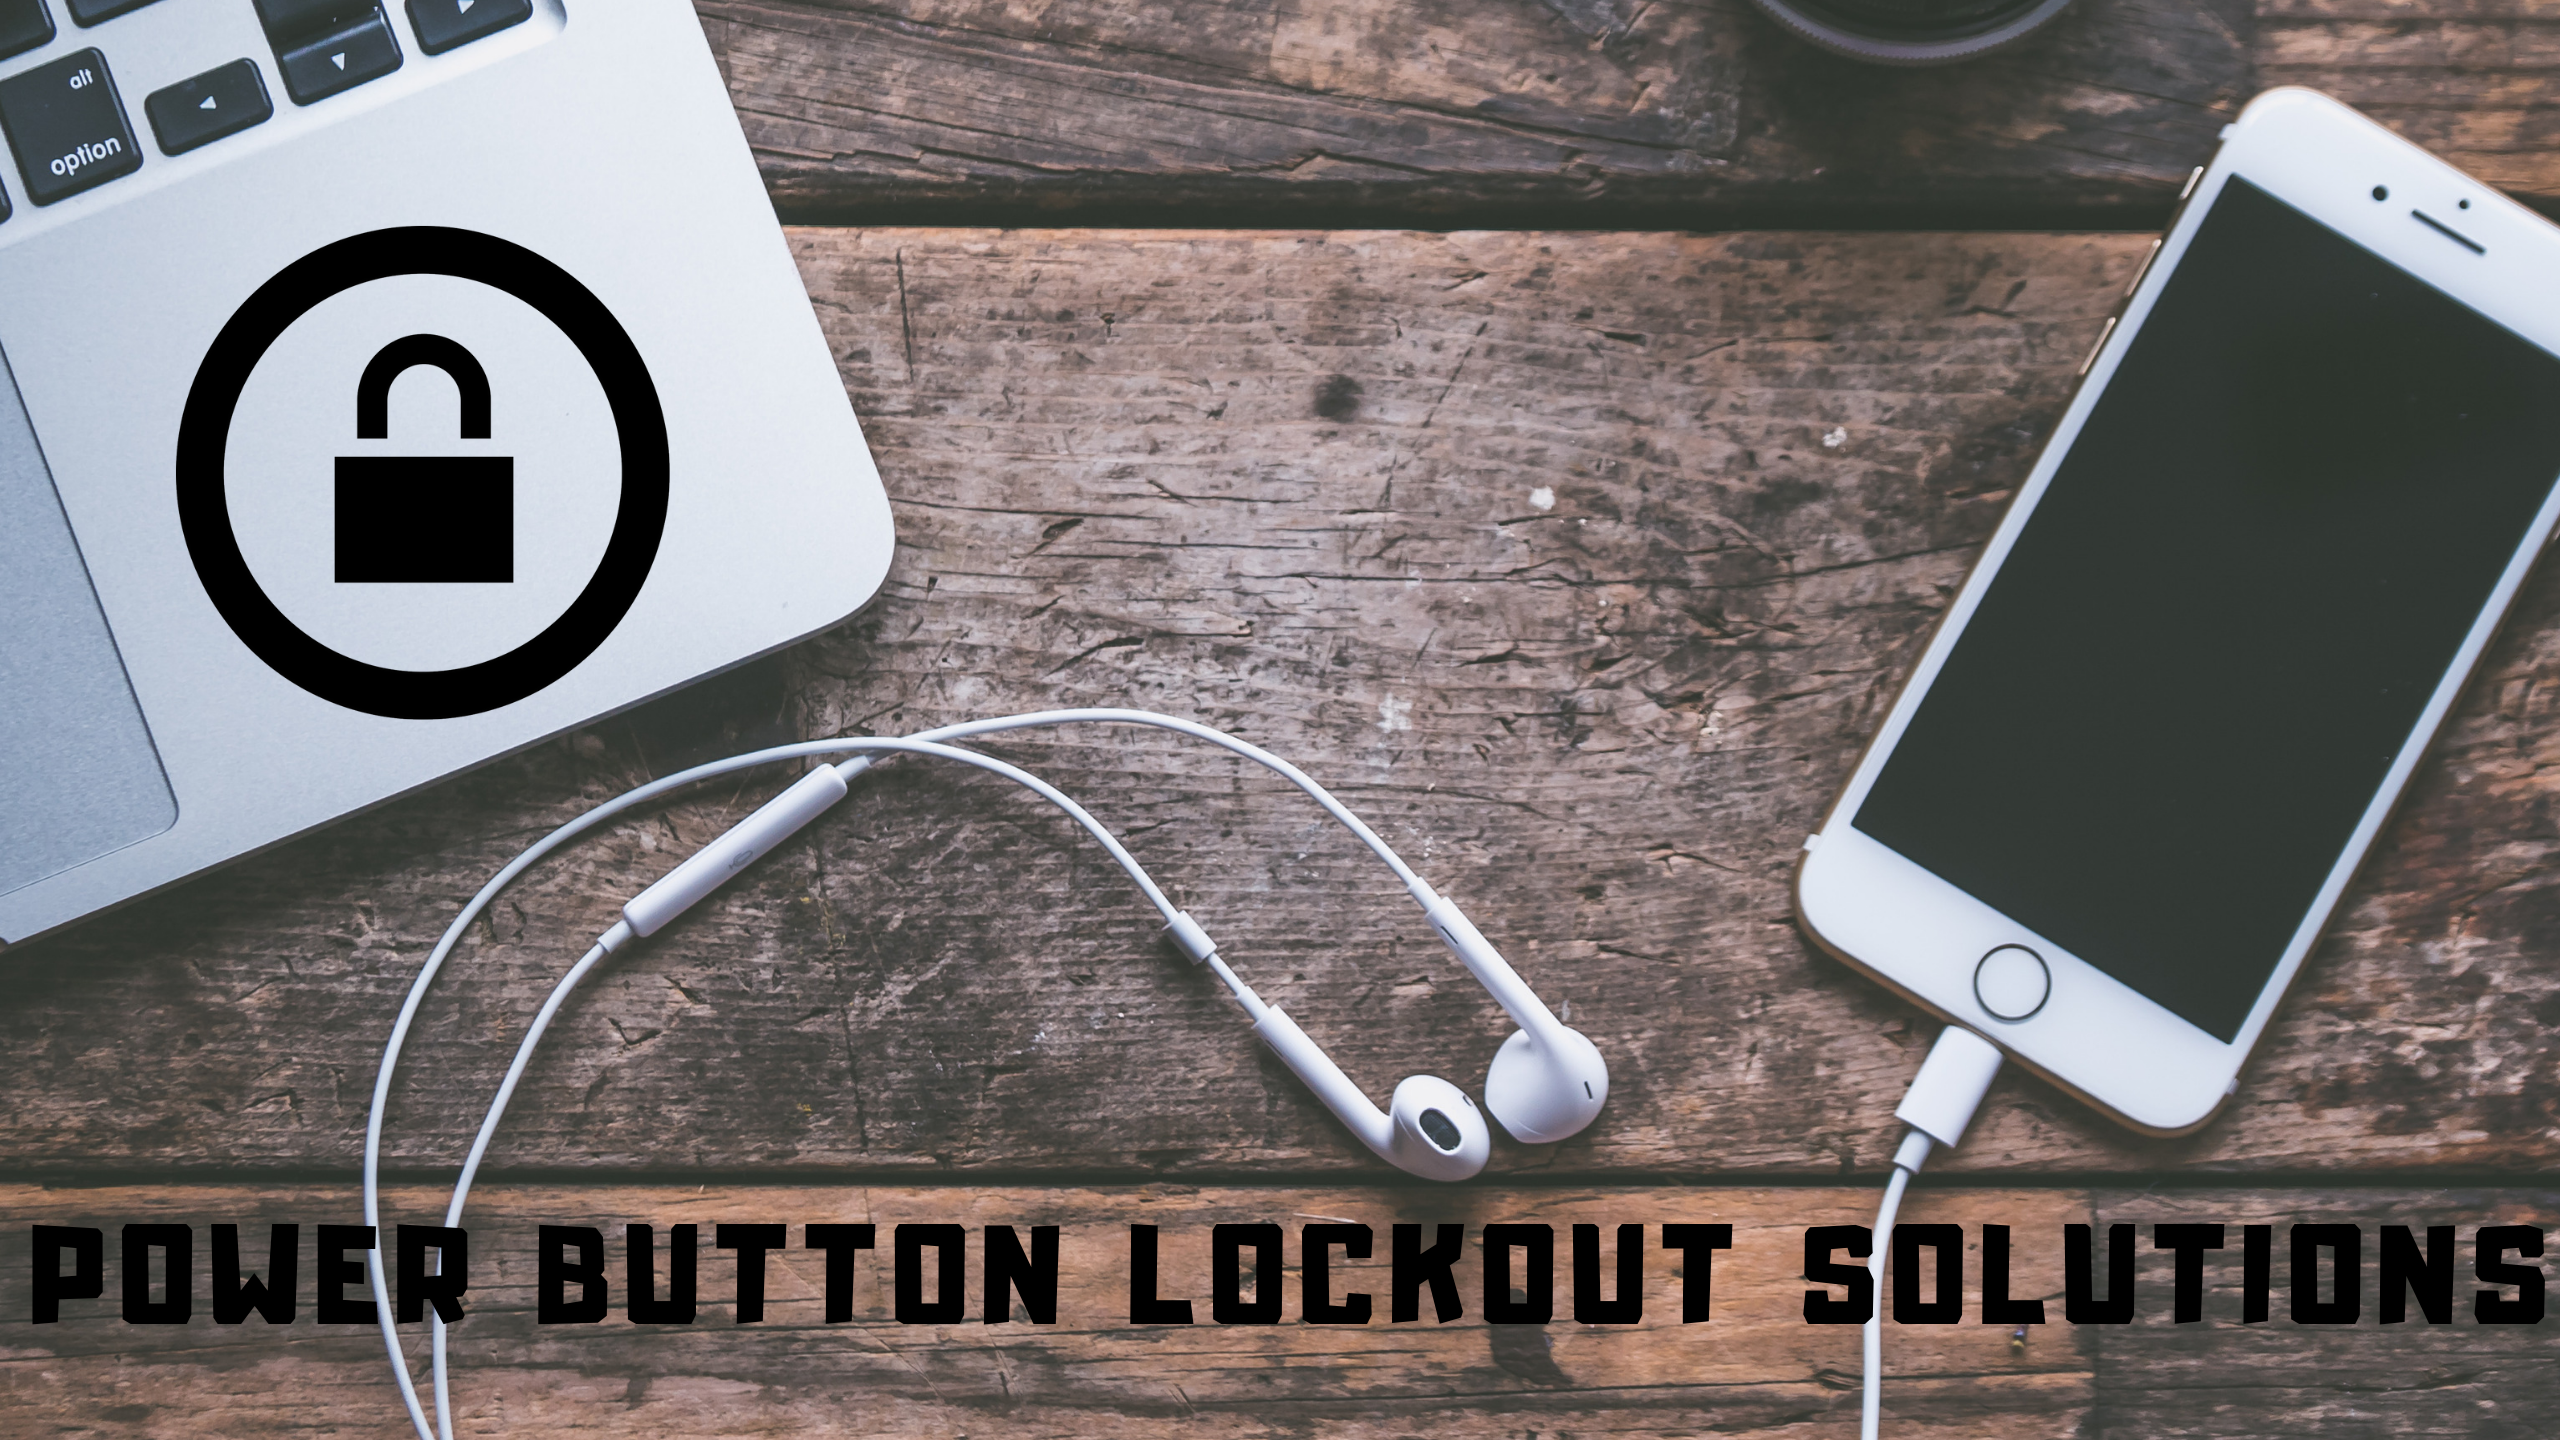 Power button lockout is not working? Solutions to turn the screen on and off